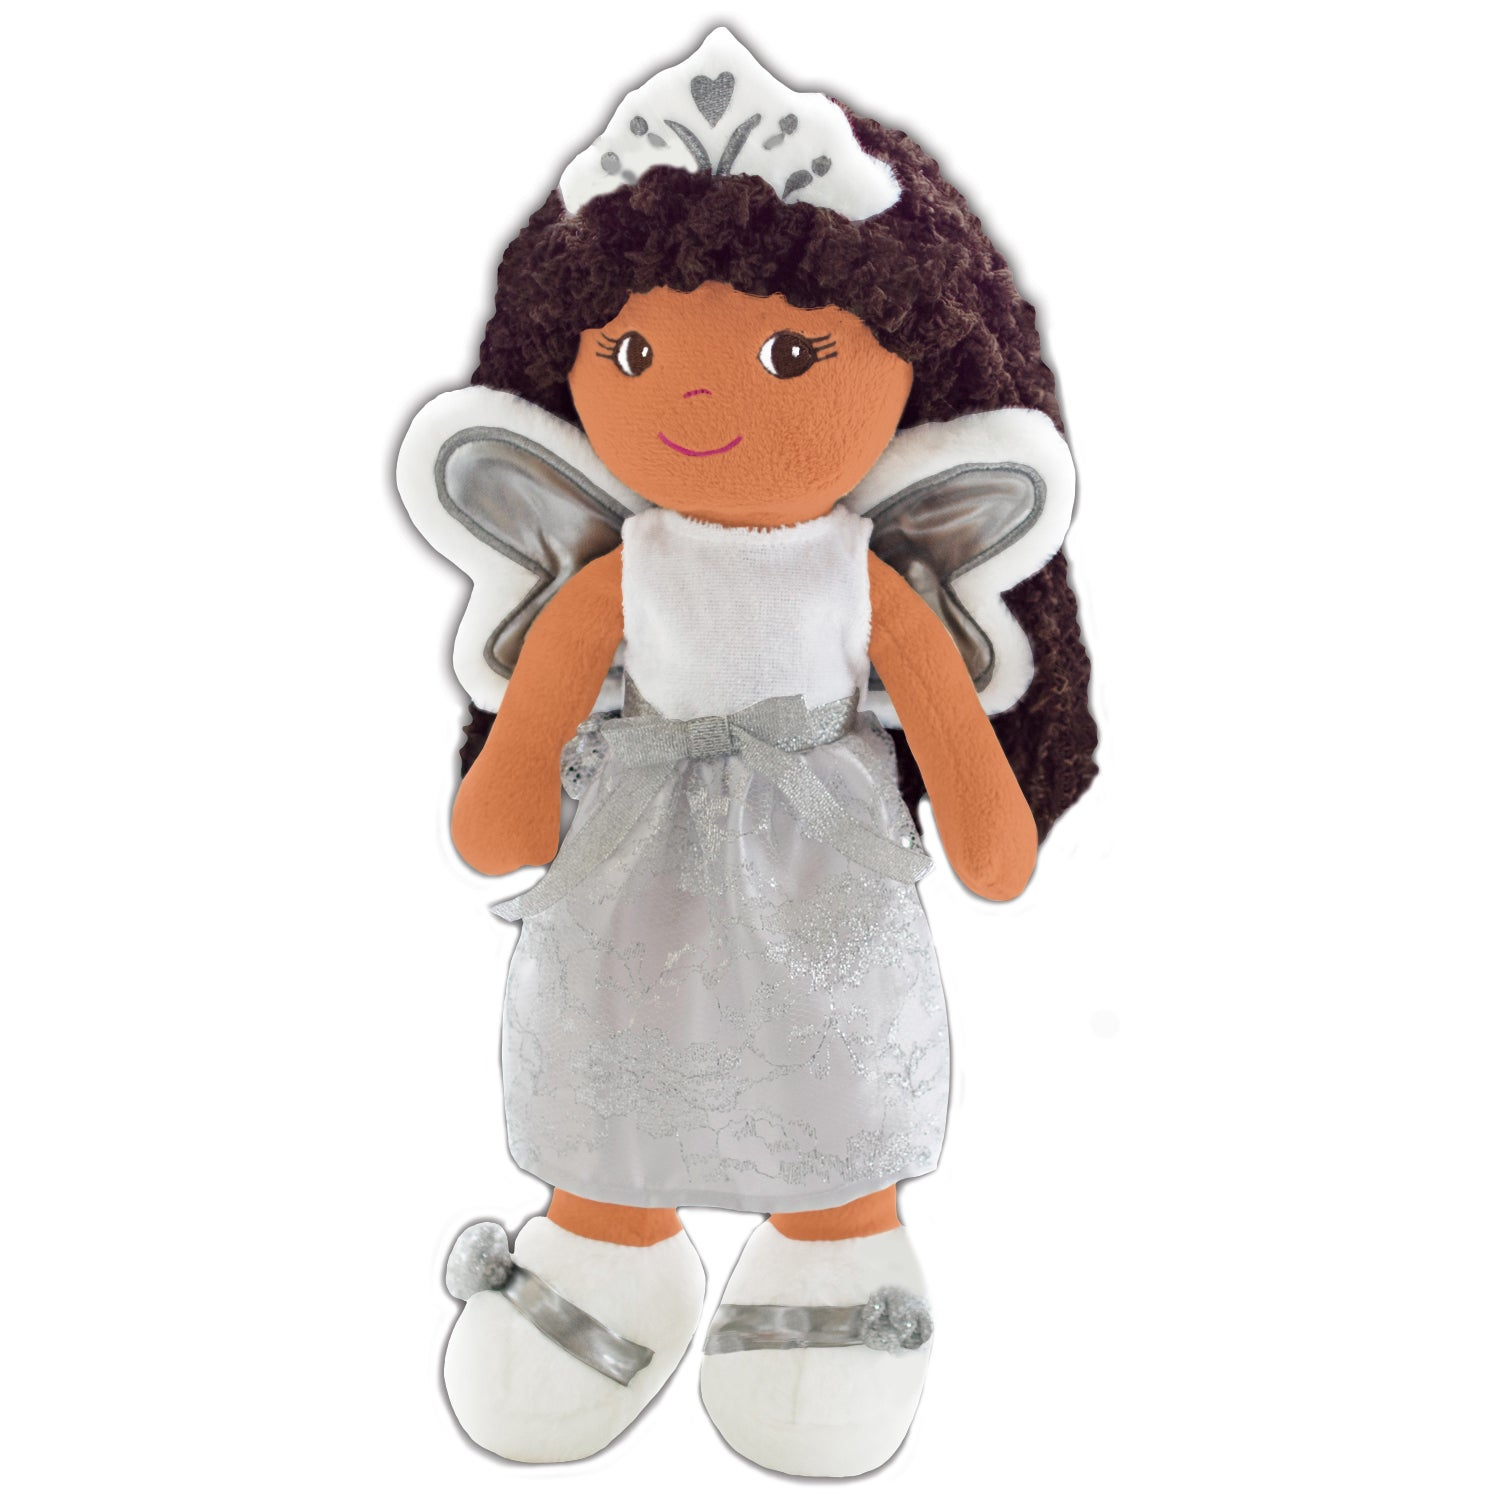 "GirlznDollz Elana Angel Baby Doll (14"", white, silver), B..."